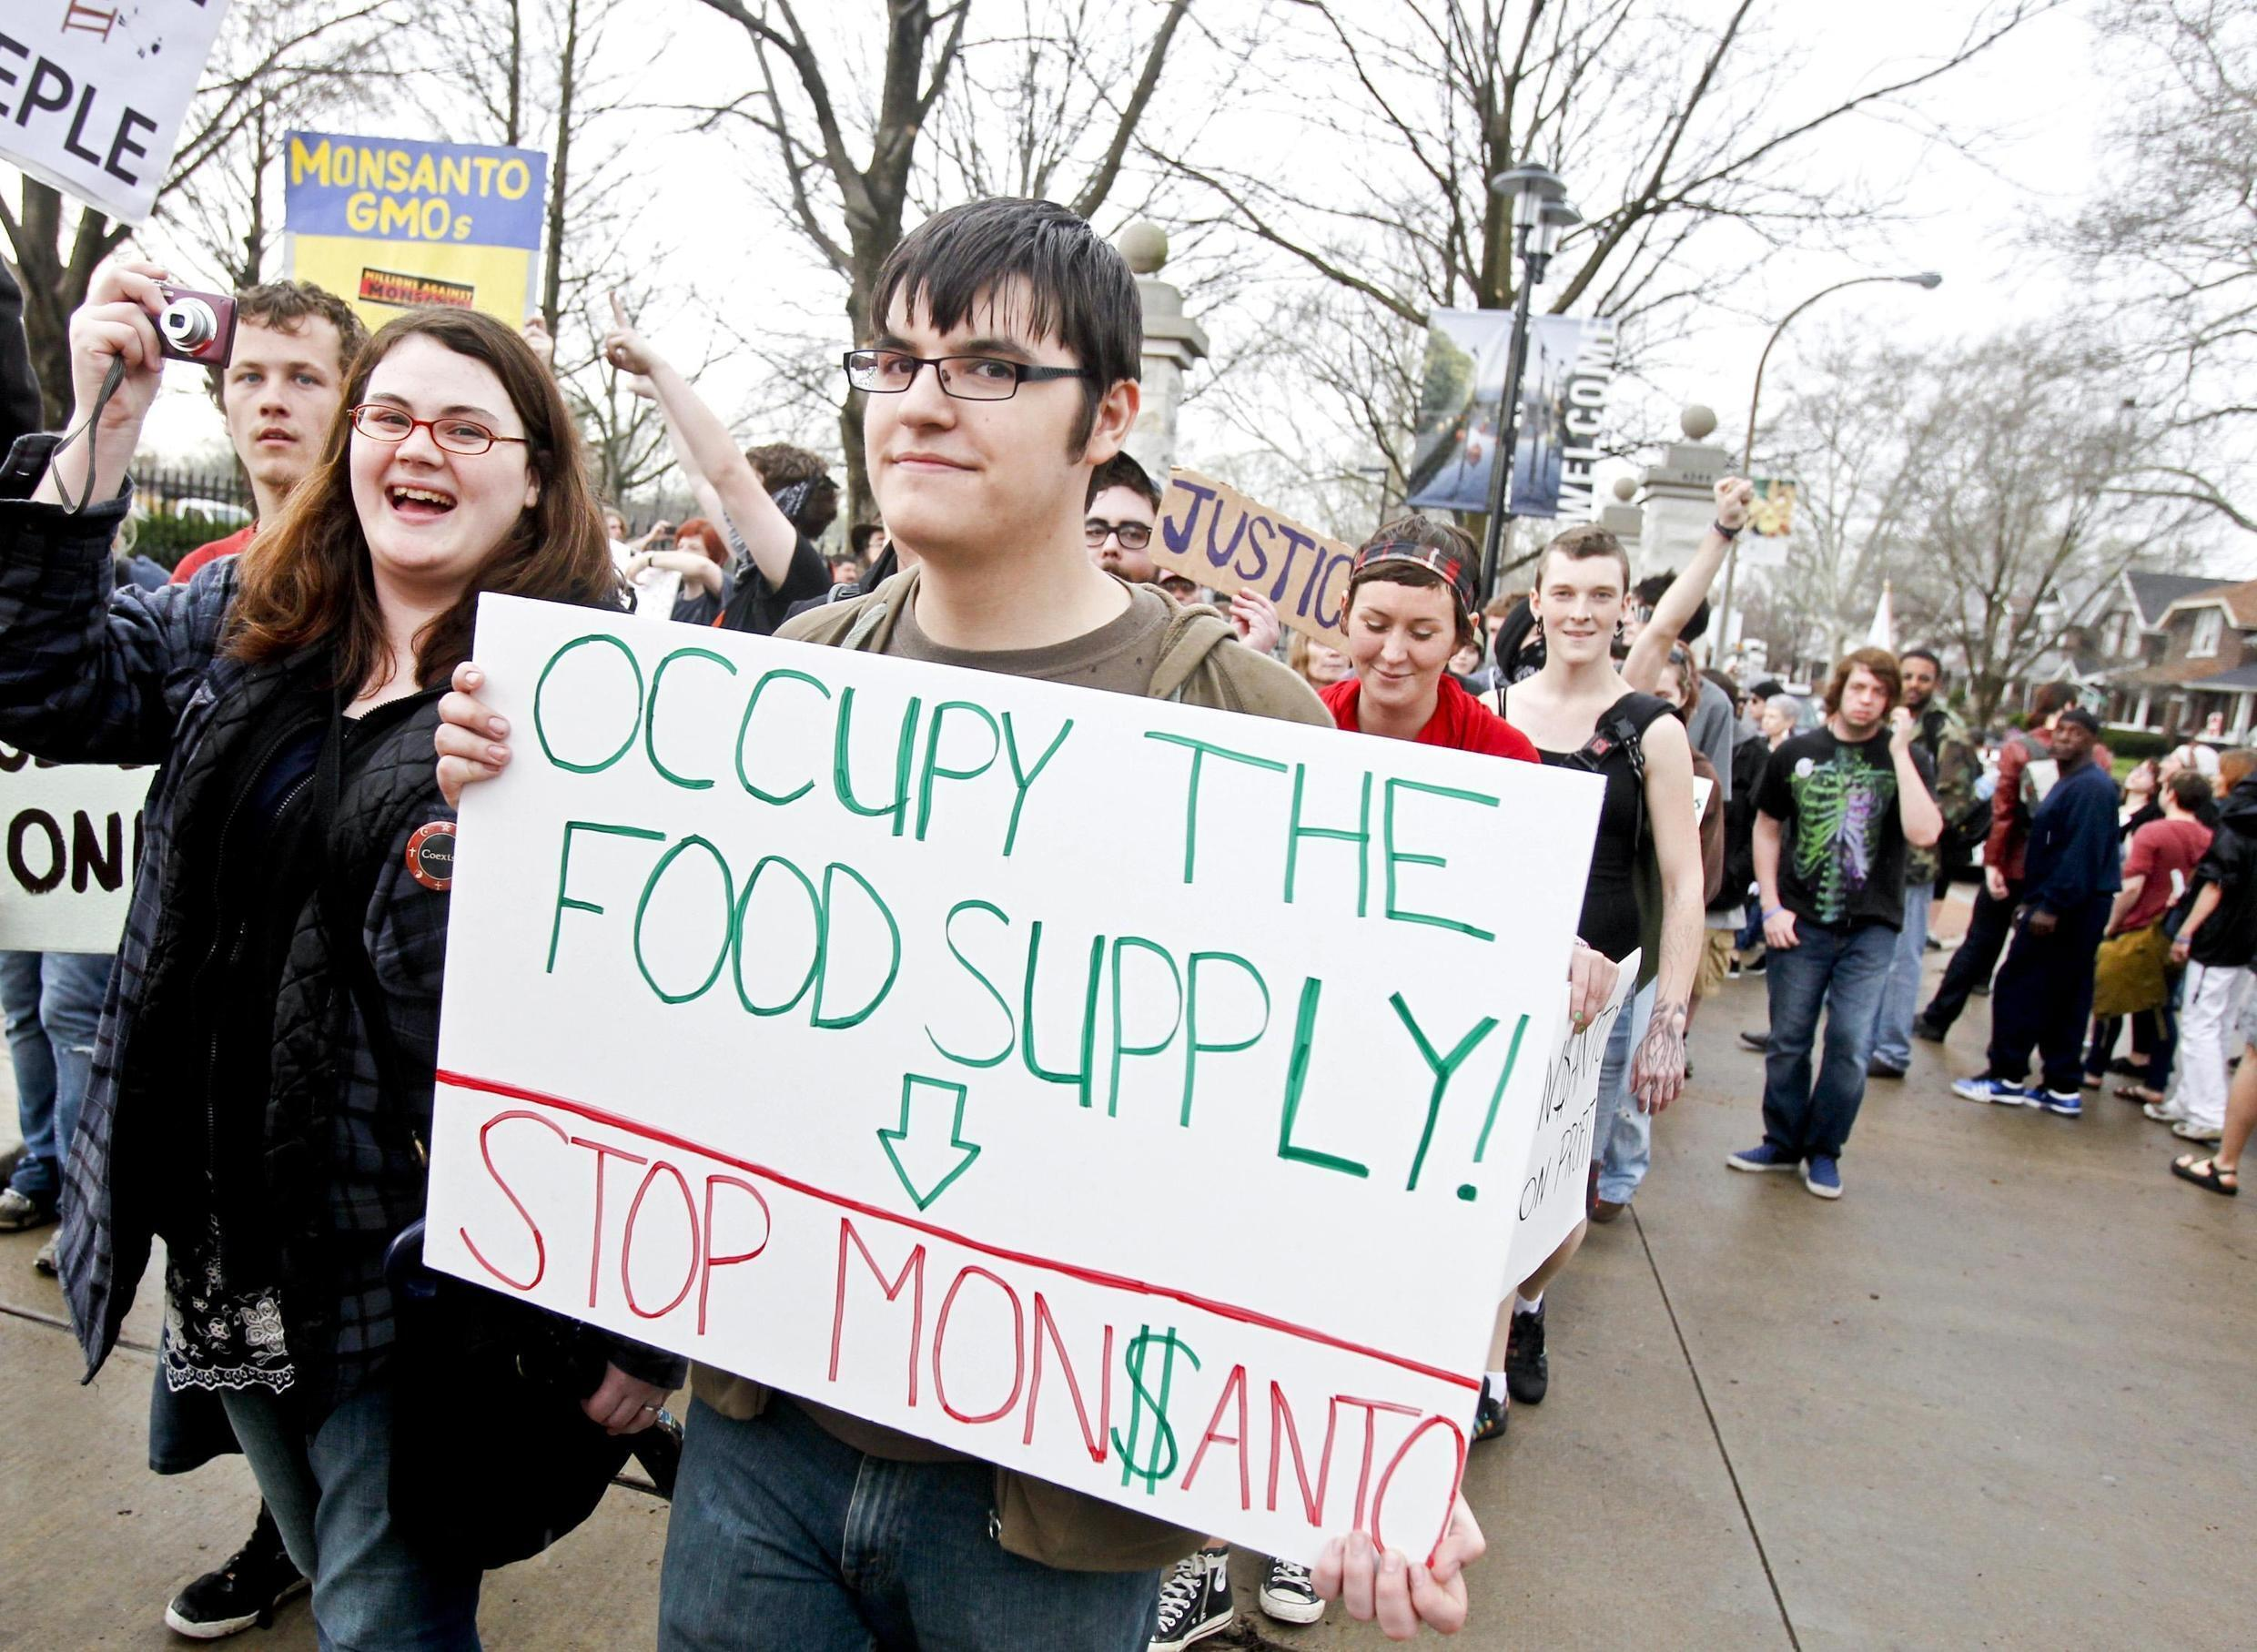 """Members of """"Occupy"""" movements in the Midwest protest against Monsanto's agricultural practices in front of the Missouri Botanical Garden during the """"Occupy the Midwest"""" regional conference in St. Louis, Missouri March 16, 2012."""